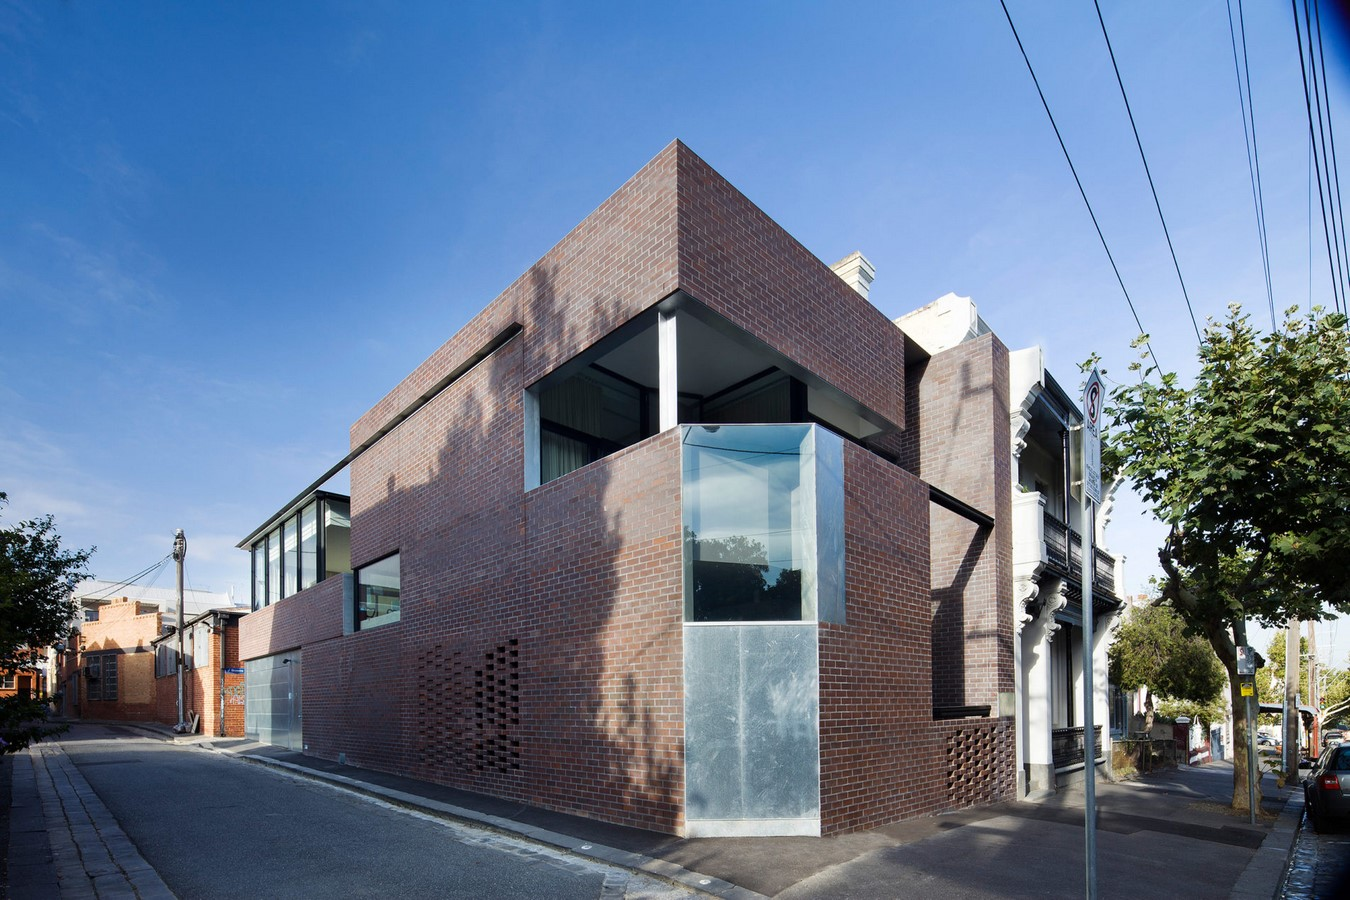 Queensberry Street House by Robert Simeoni Architects - Sheet3